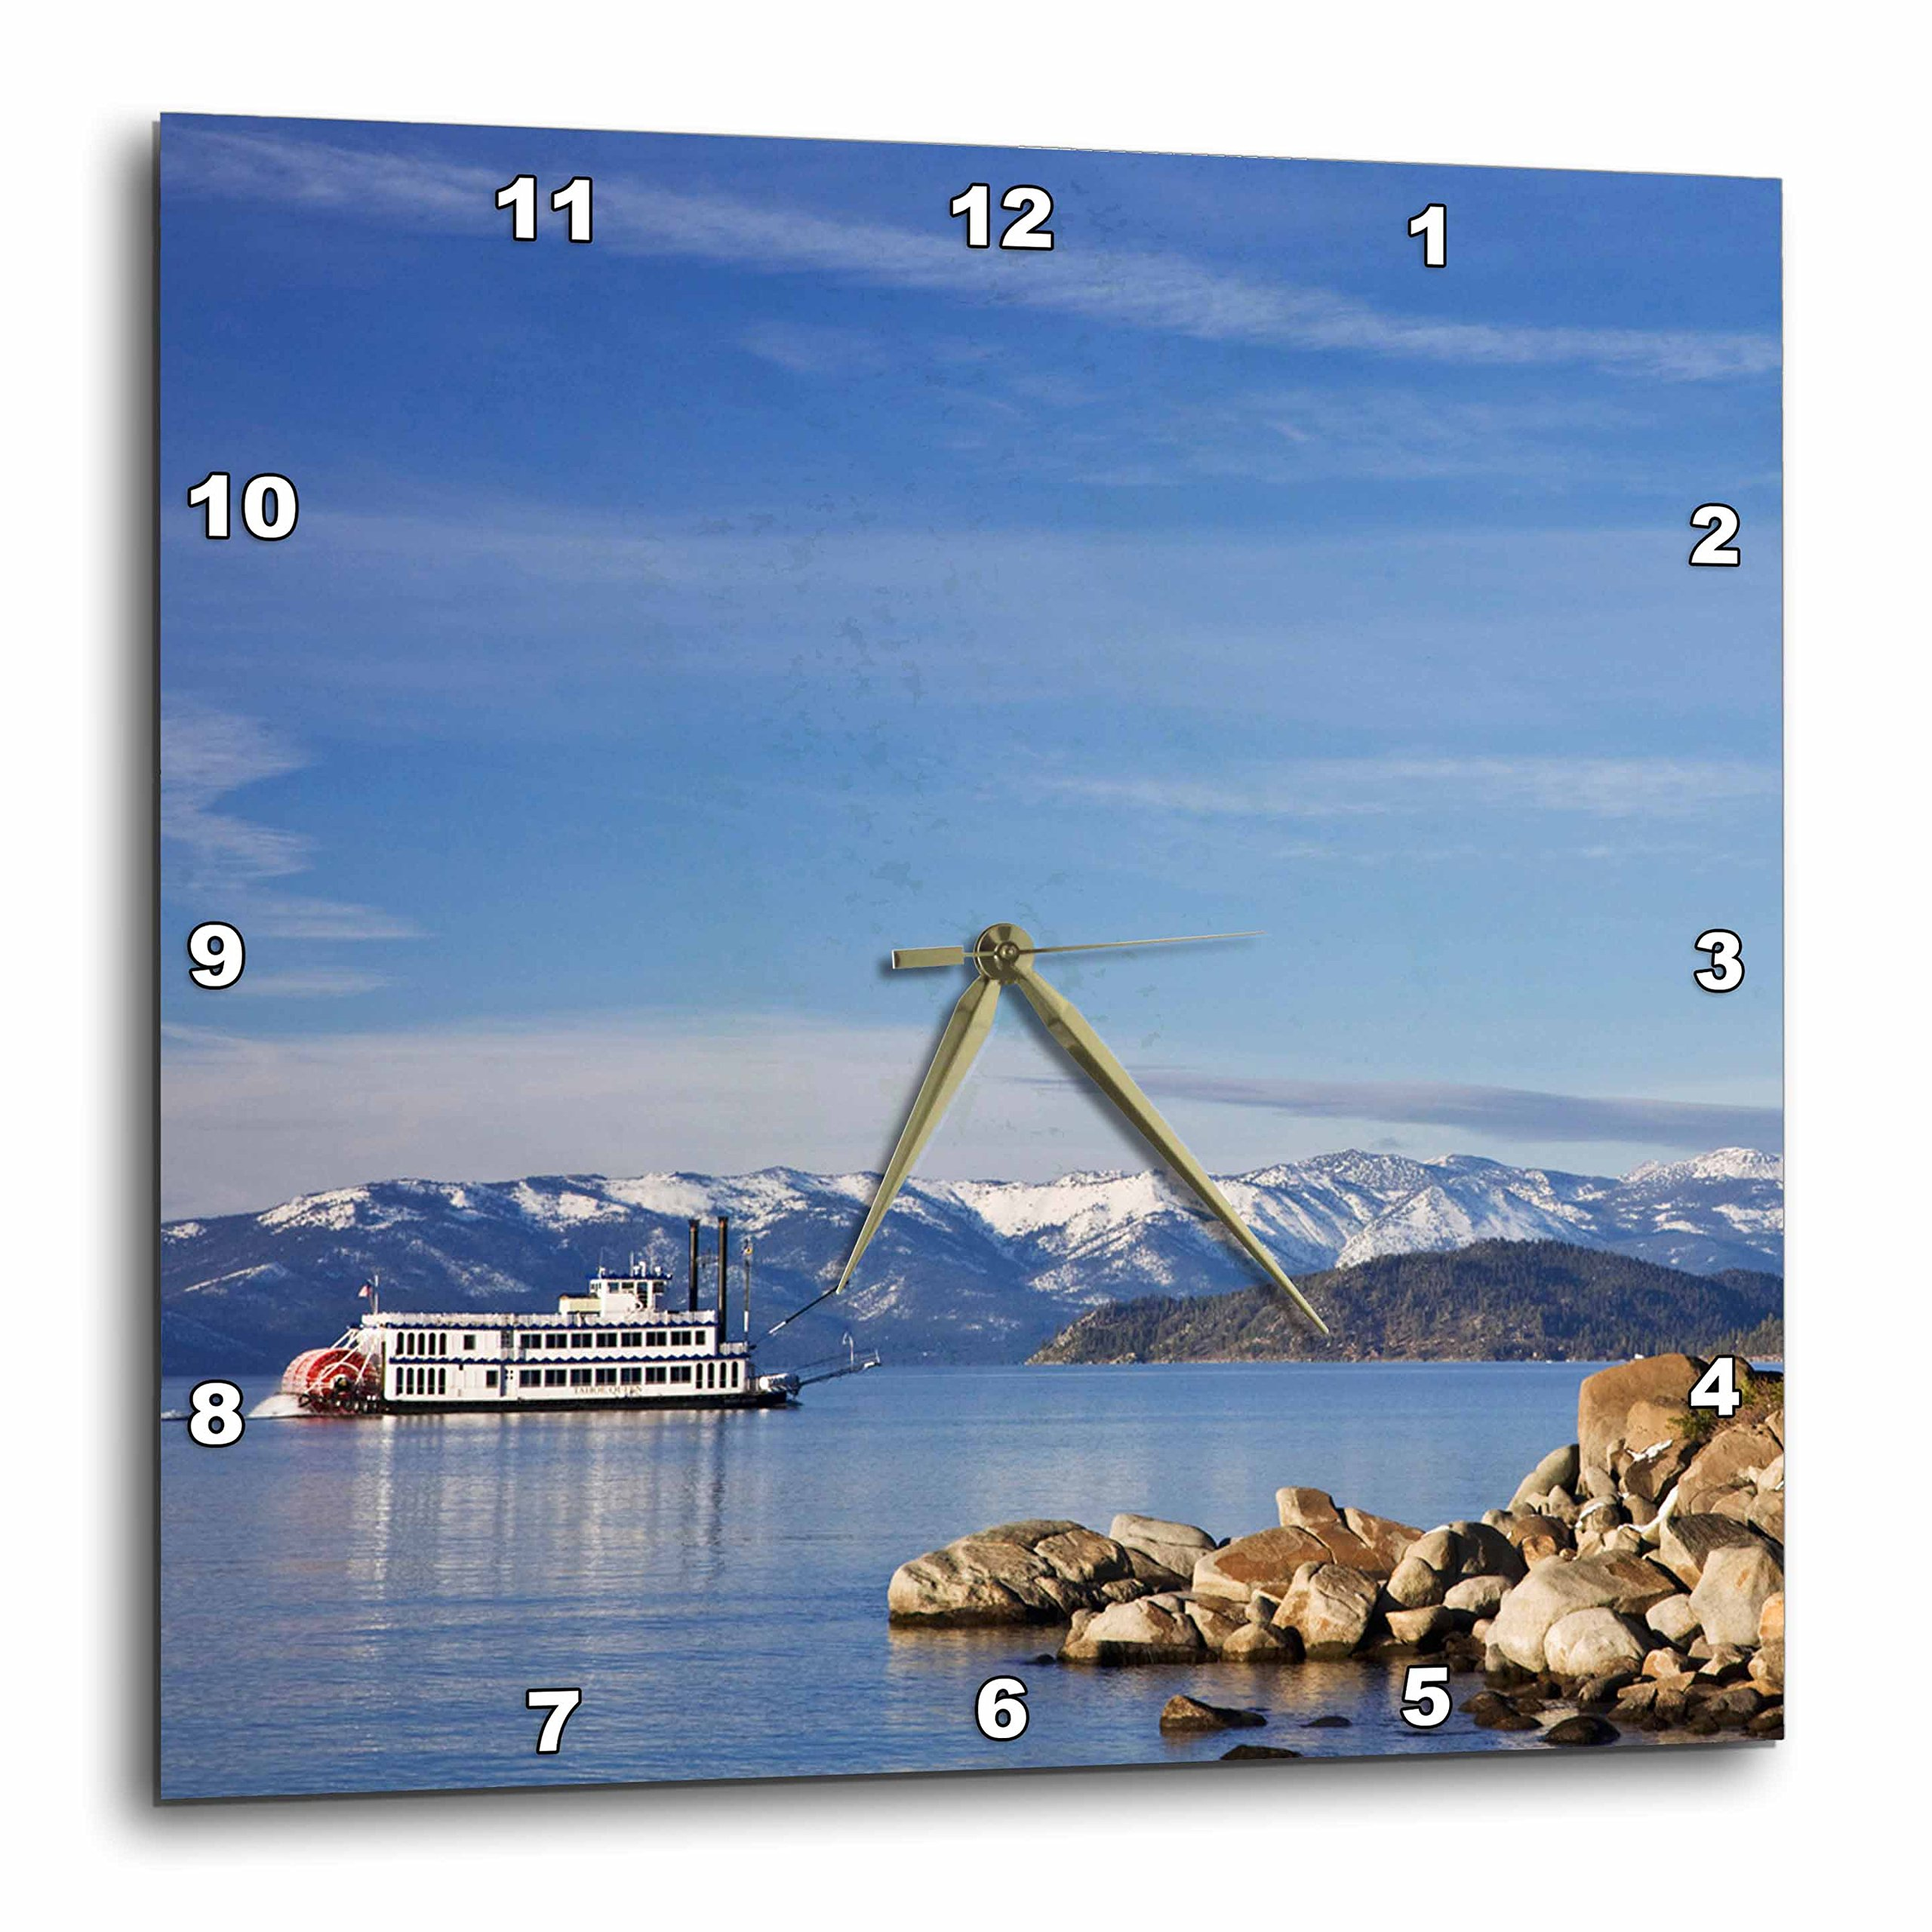 3dRose DPP_92195_1 Nevada, Lake Tahoe Paddleboat Across The Lake - US29 BJA0037 - Jaynes Gallery - Wall Clock, 10 by 10-Inch by 3dRose